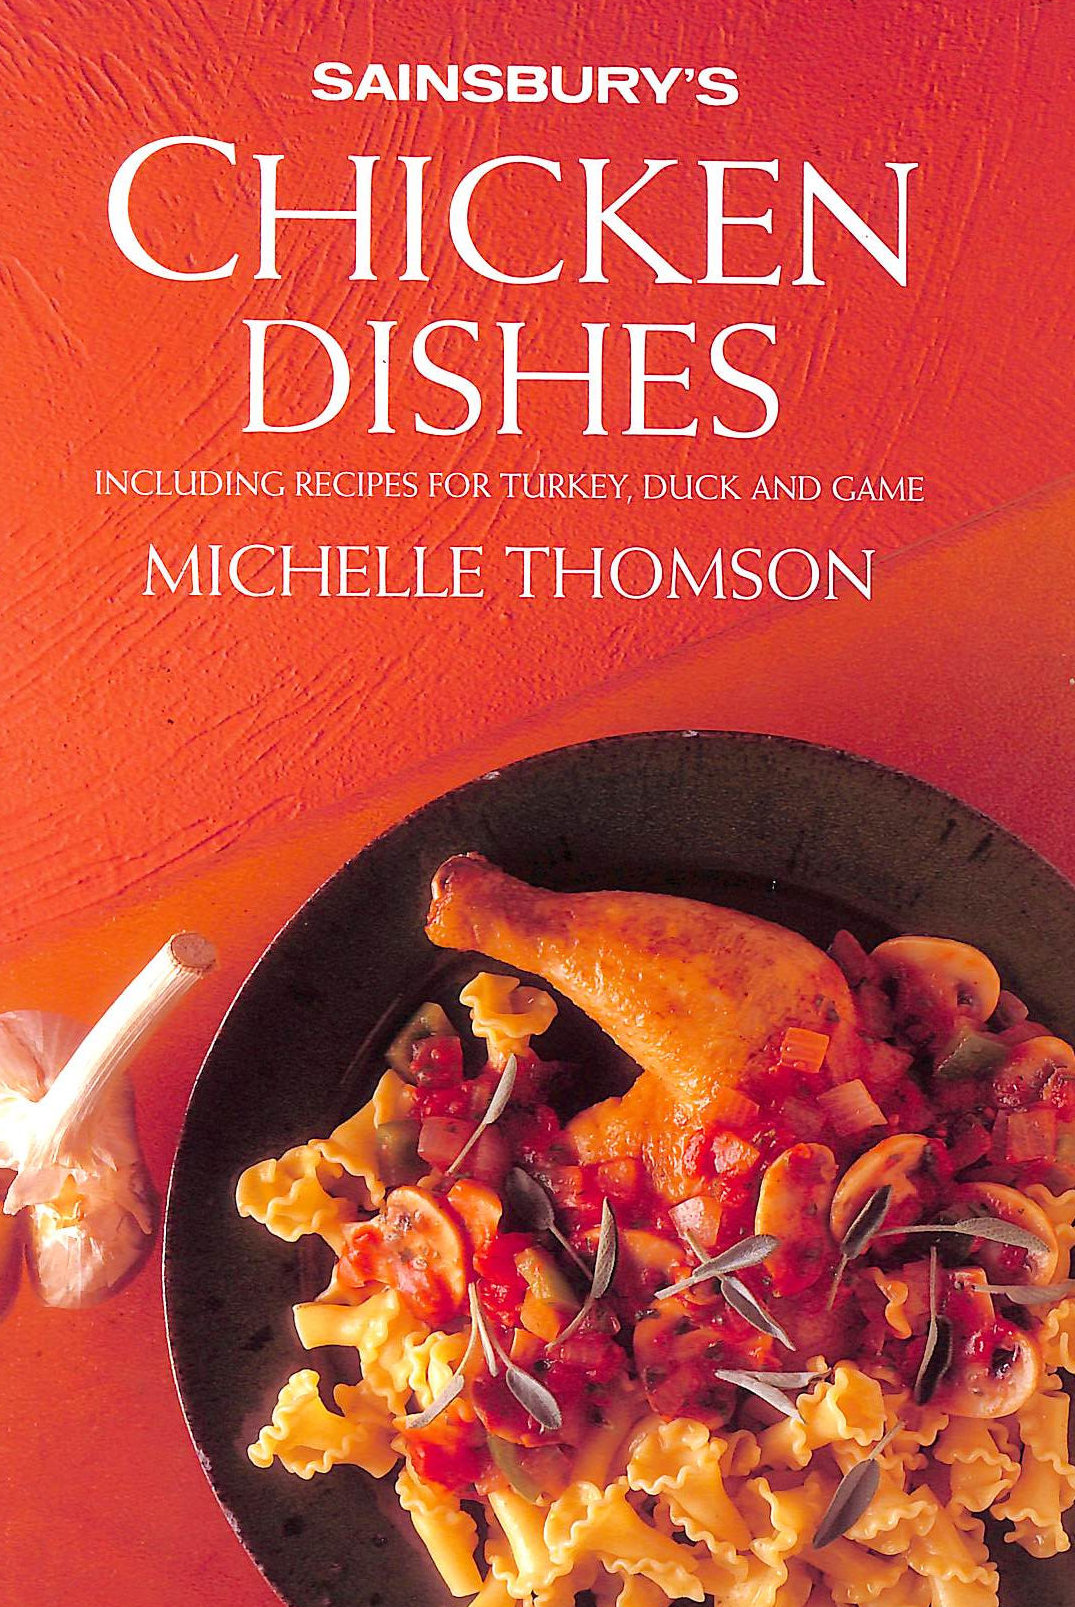 Image for Chicken Dishes: Including Recipes for Turkey, Duck and Game (Good food library)